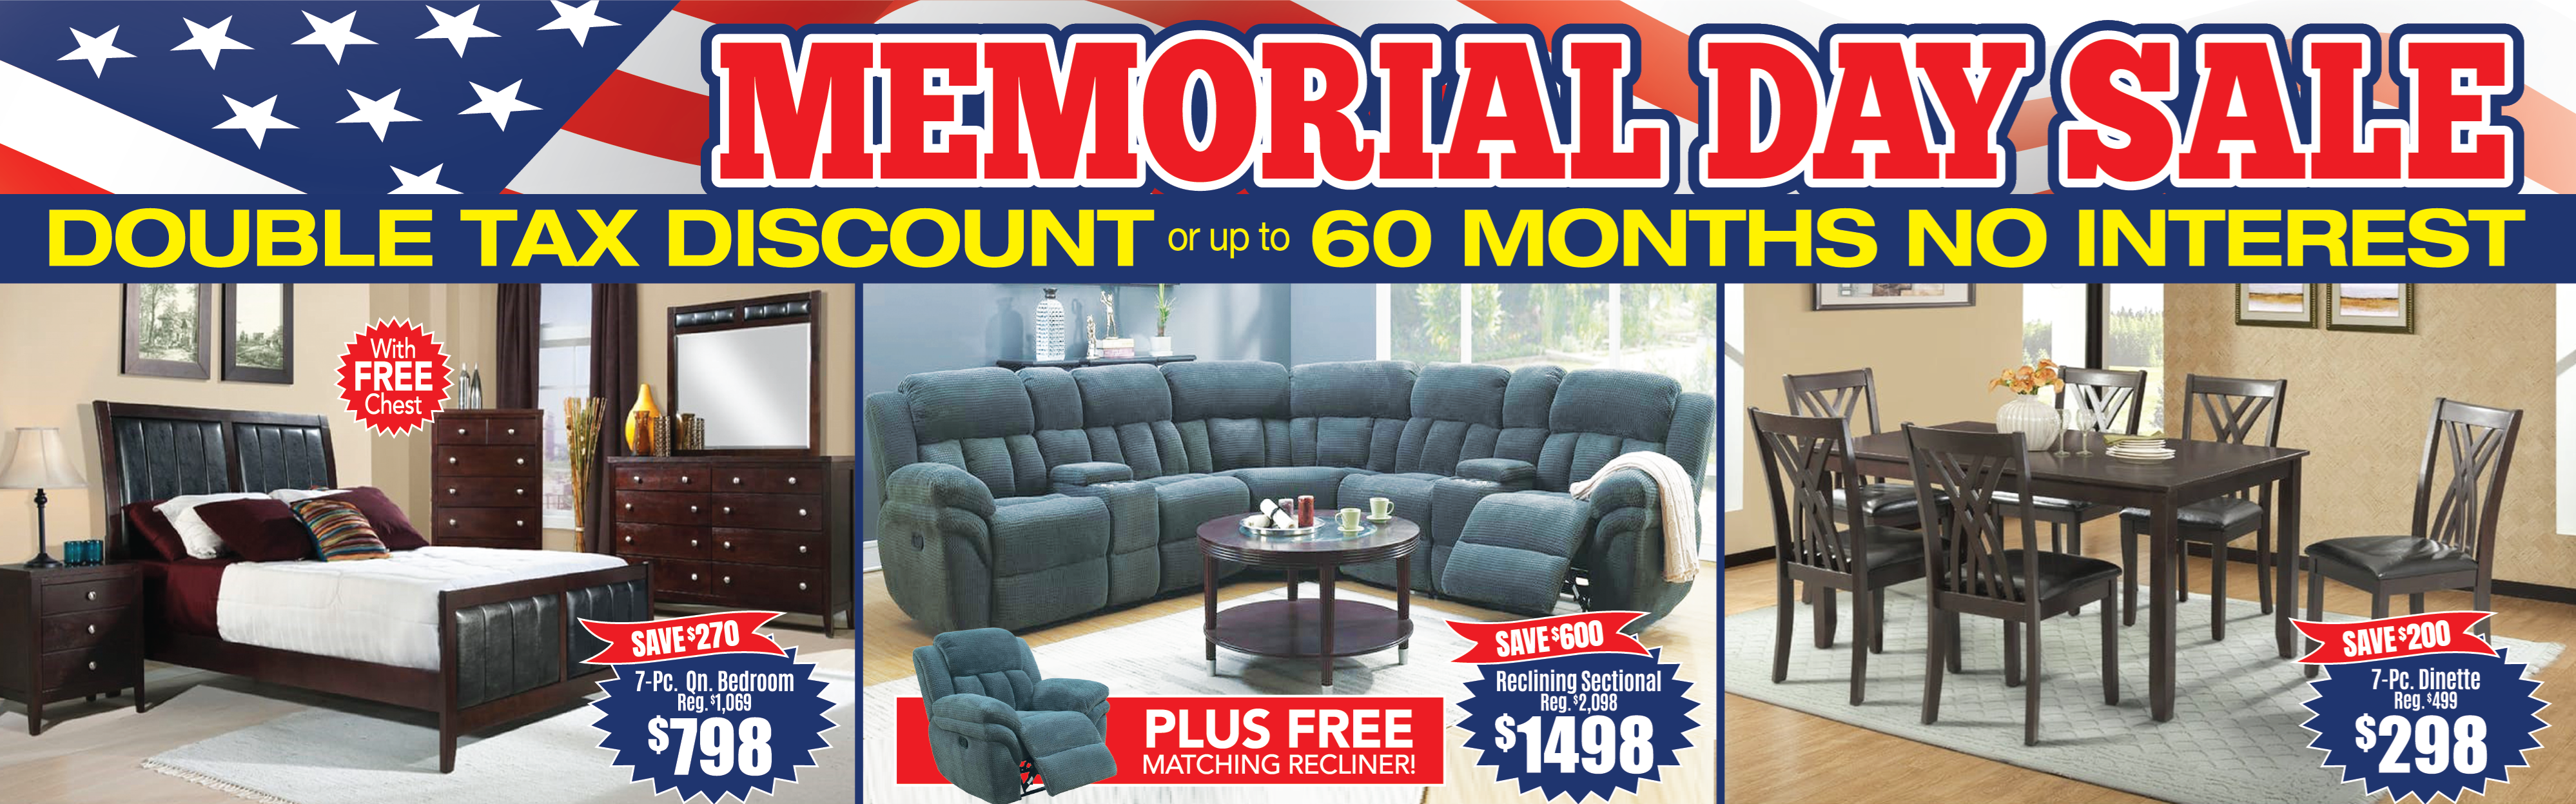 3 Day Furniture El Paso Texas Midwest Tire